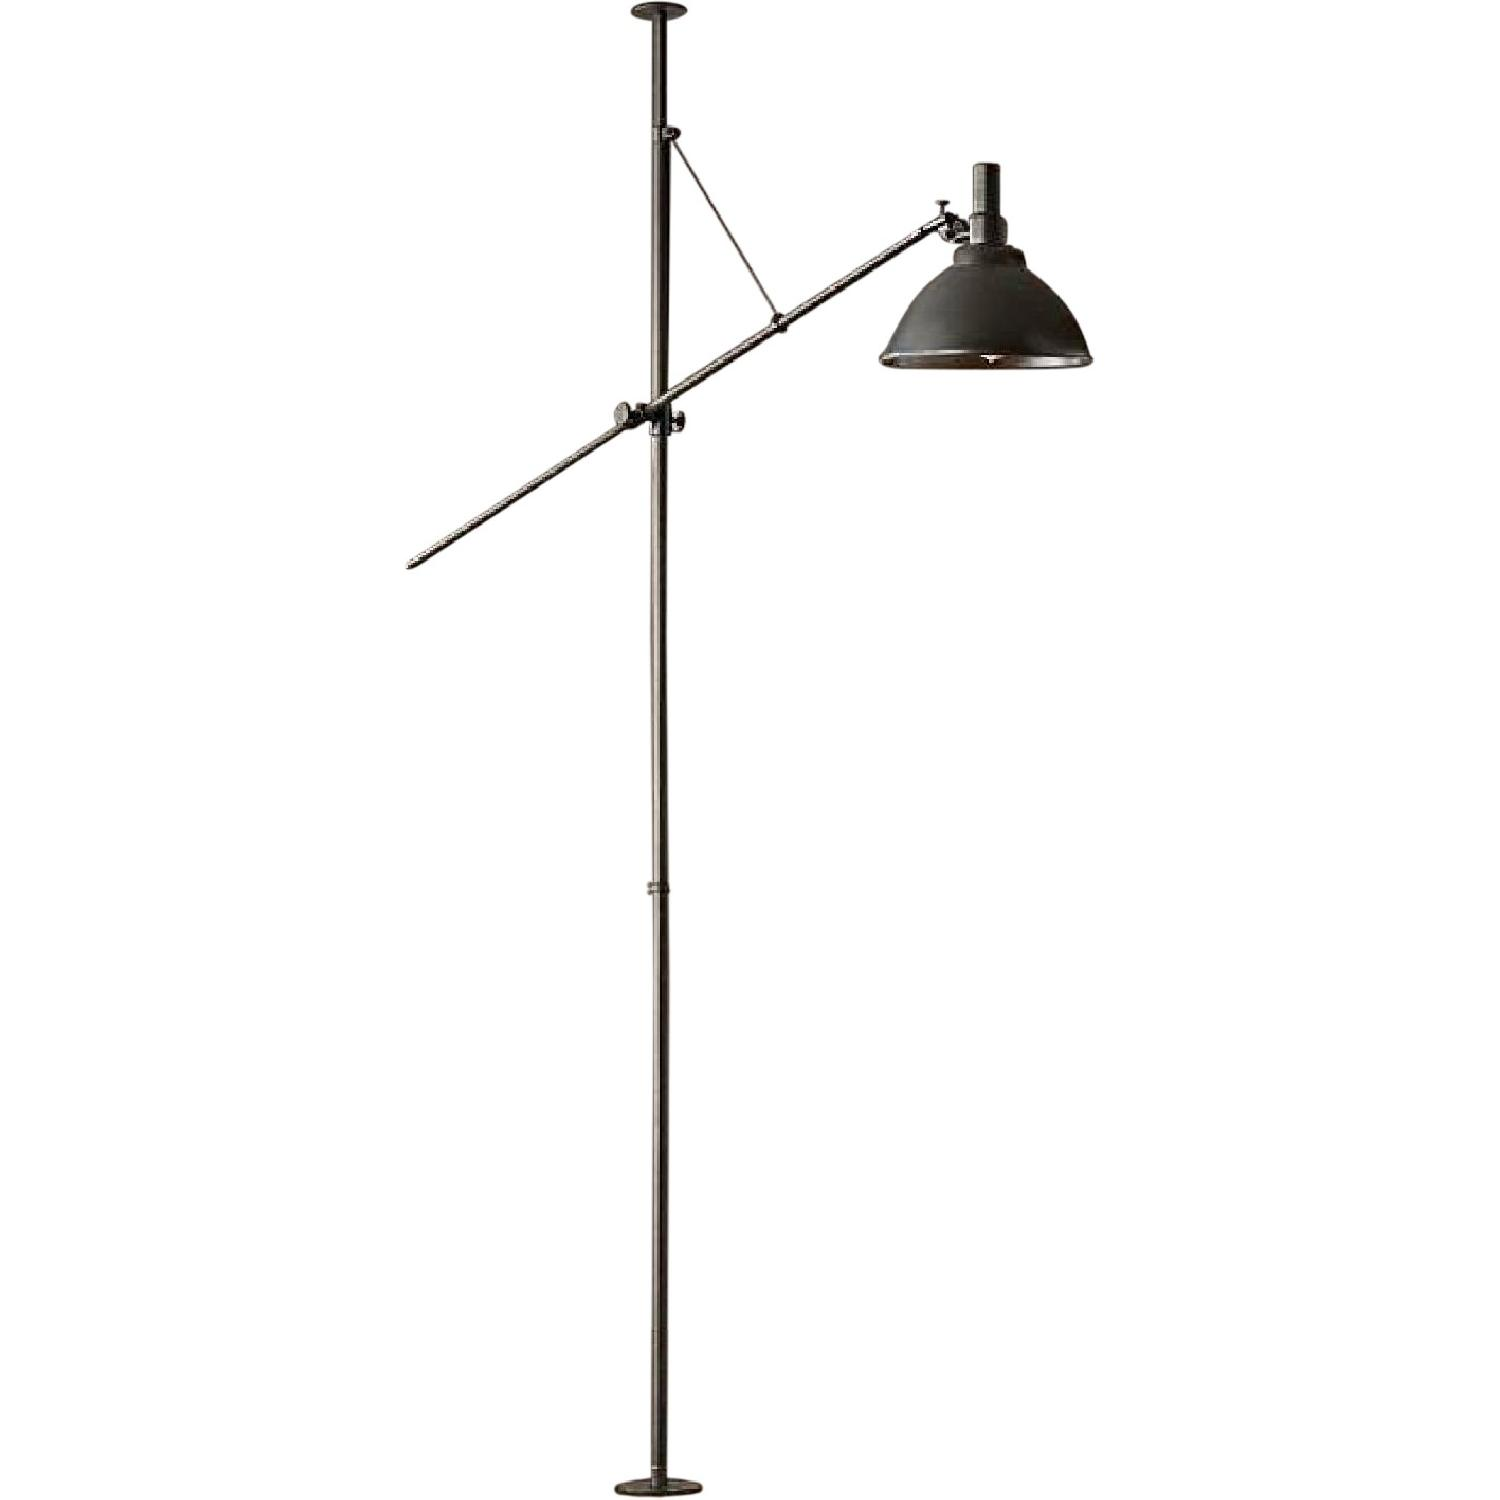 Restoration Hardware French Factory Boom Lamp in Iron